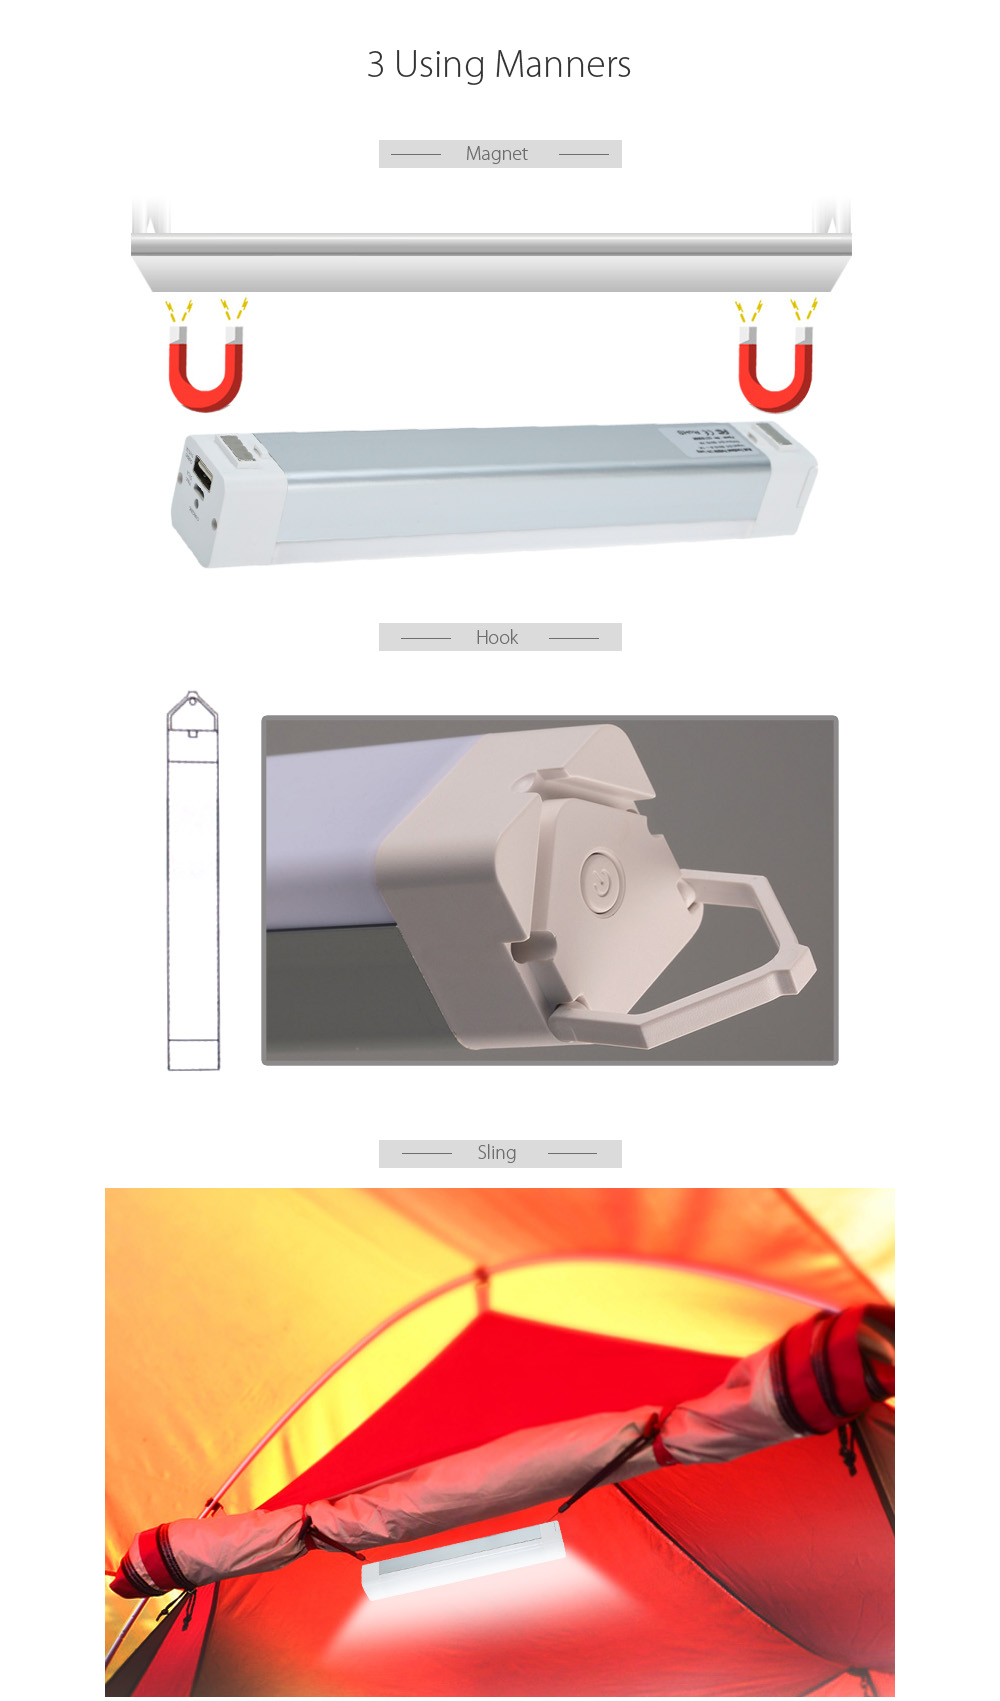 5W Solar Rechargeable LED Tube Light with Magnet Hook Sling